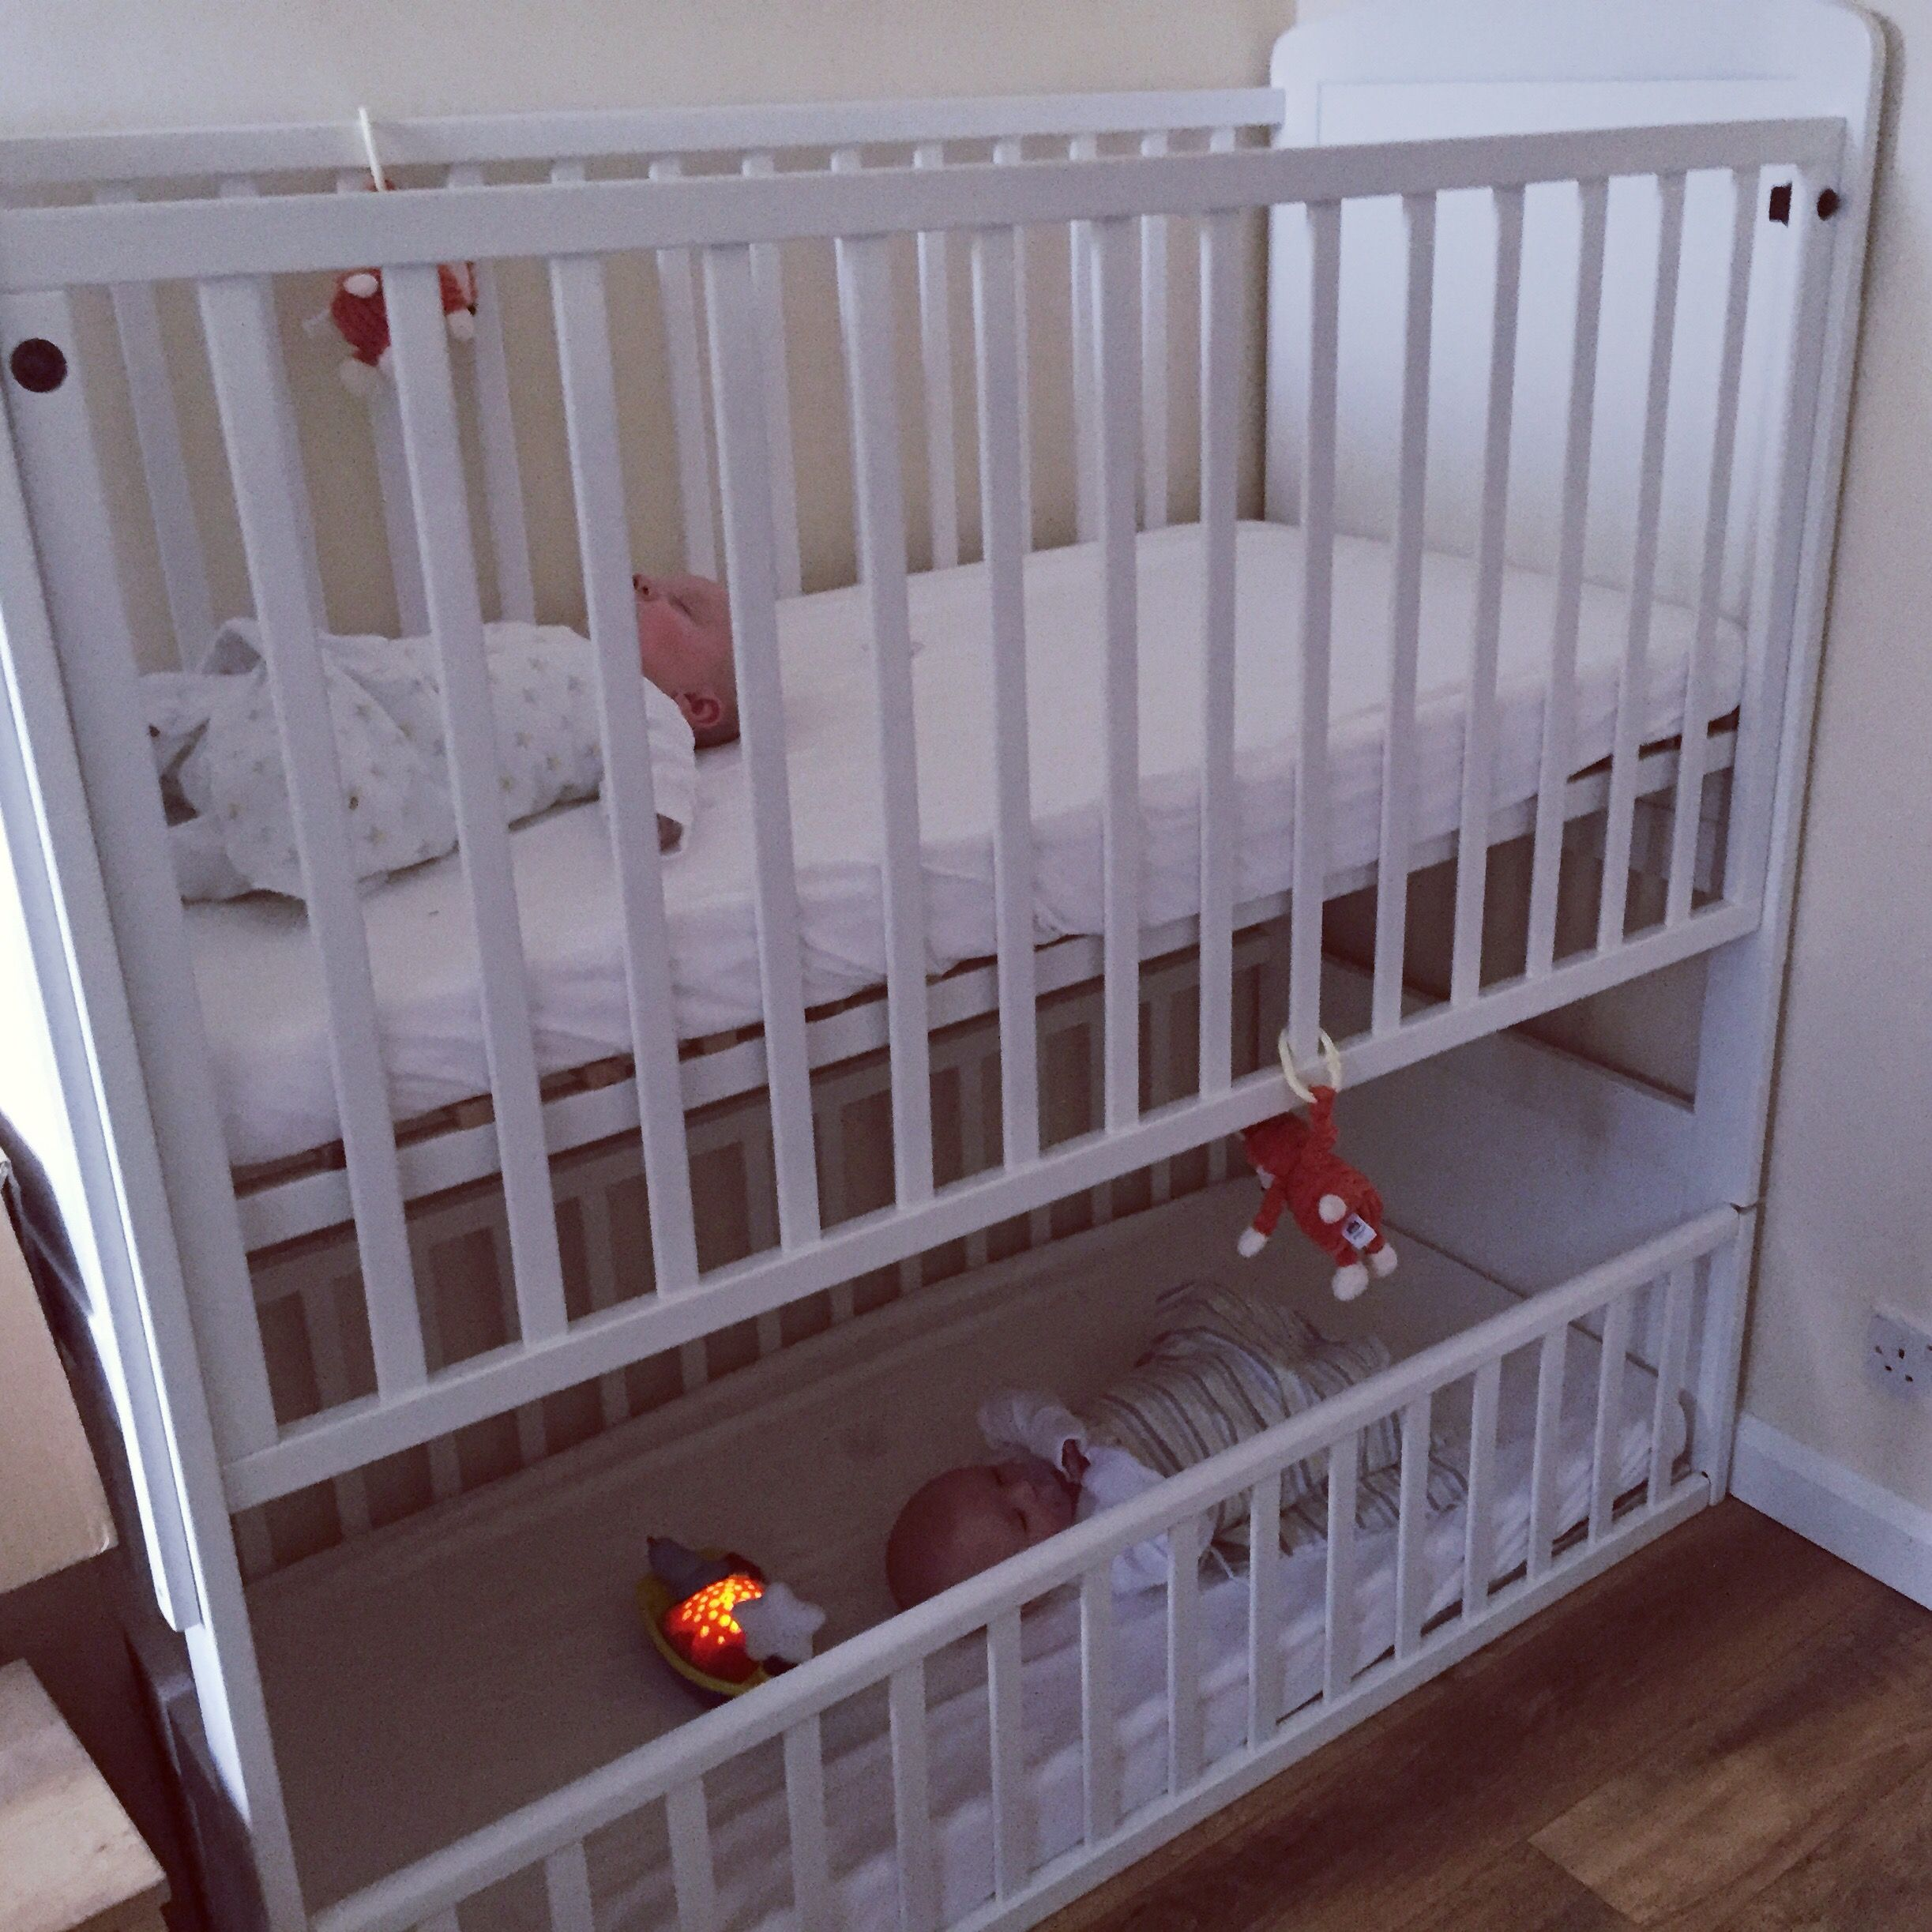 Special enclosed crib for premature babies - A Bunk Cot For Twins Or Siblings Close In Age Perfect If You Are Looking